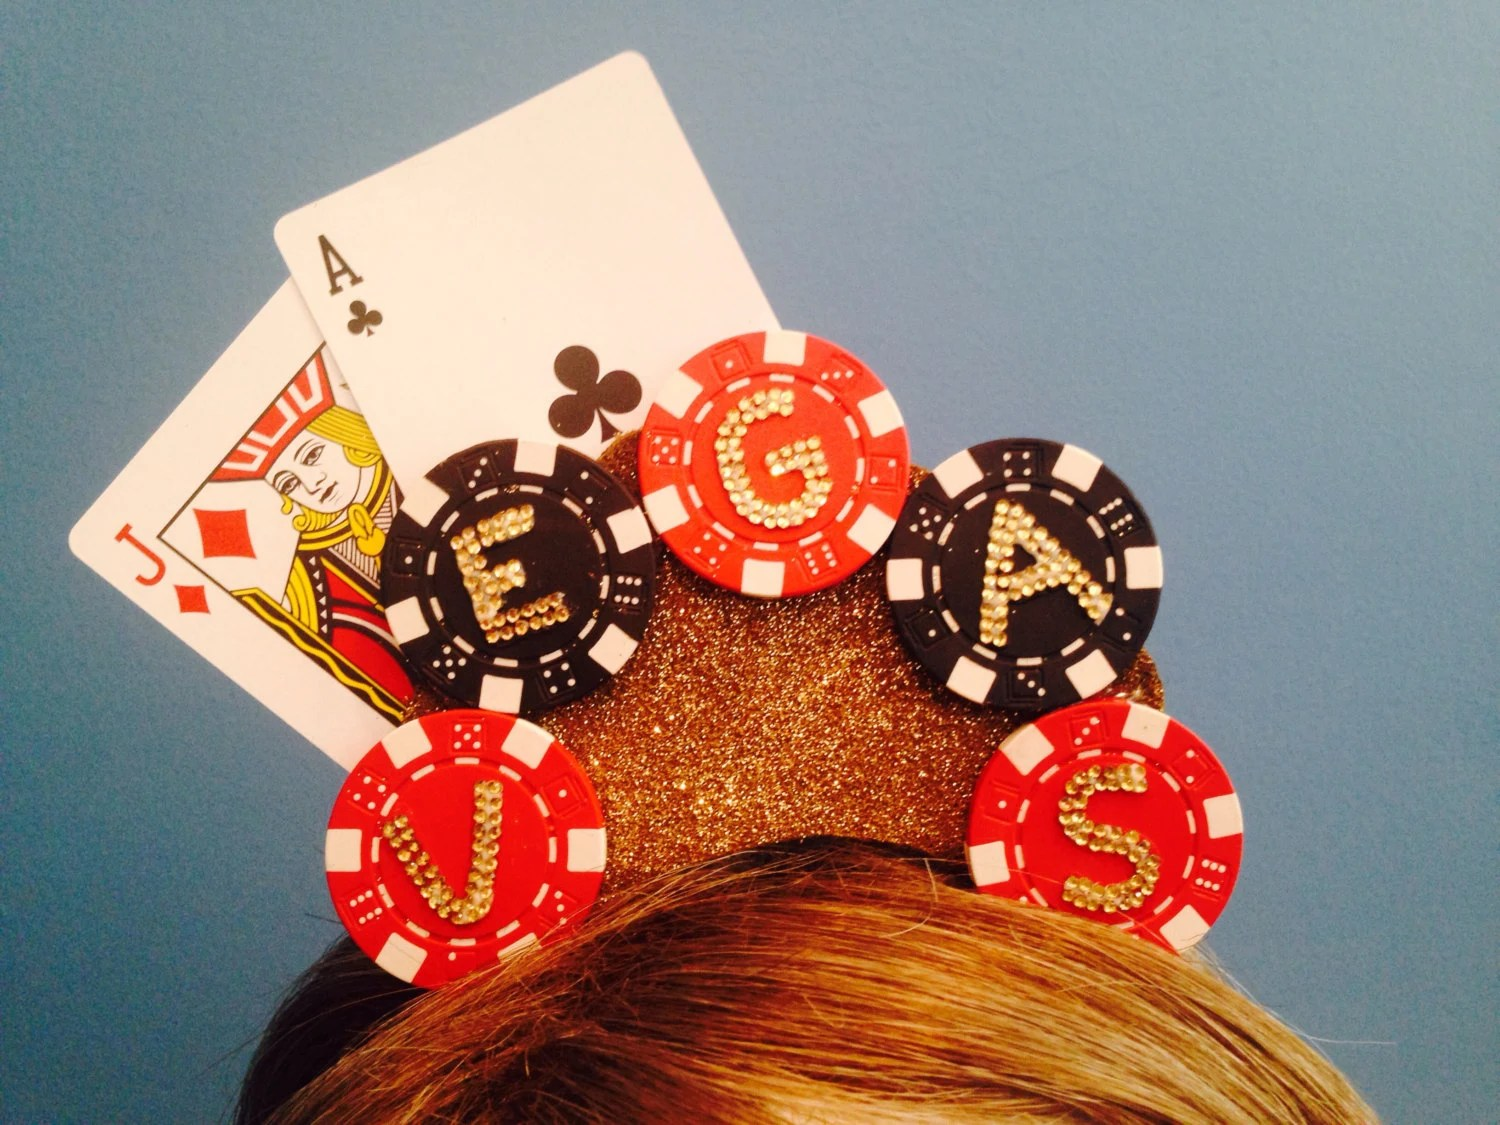 Vegas Headband Poker Chip Playing Card Casino Headpiece